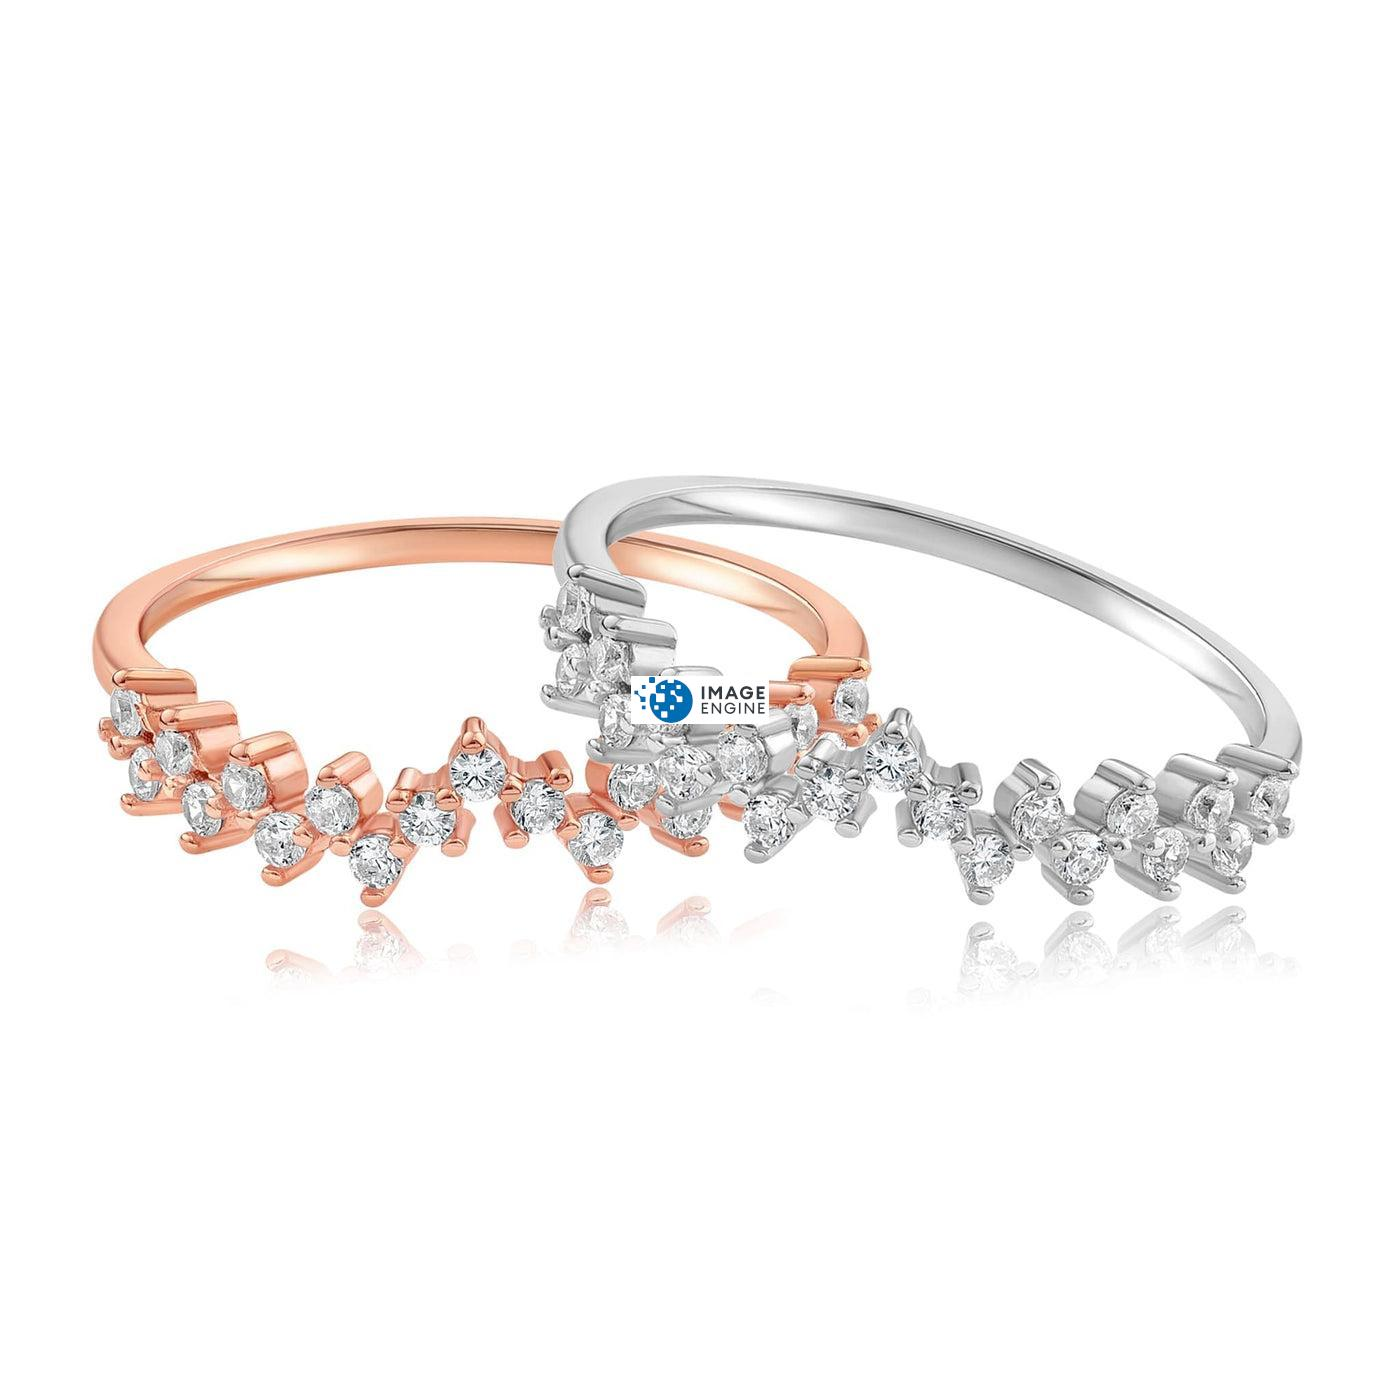 Esther Petite Cluster Ring - Front View Side by Side - 18K Rose Gold Vermeil and 925 Sterling Silver